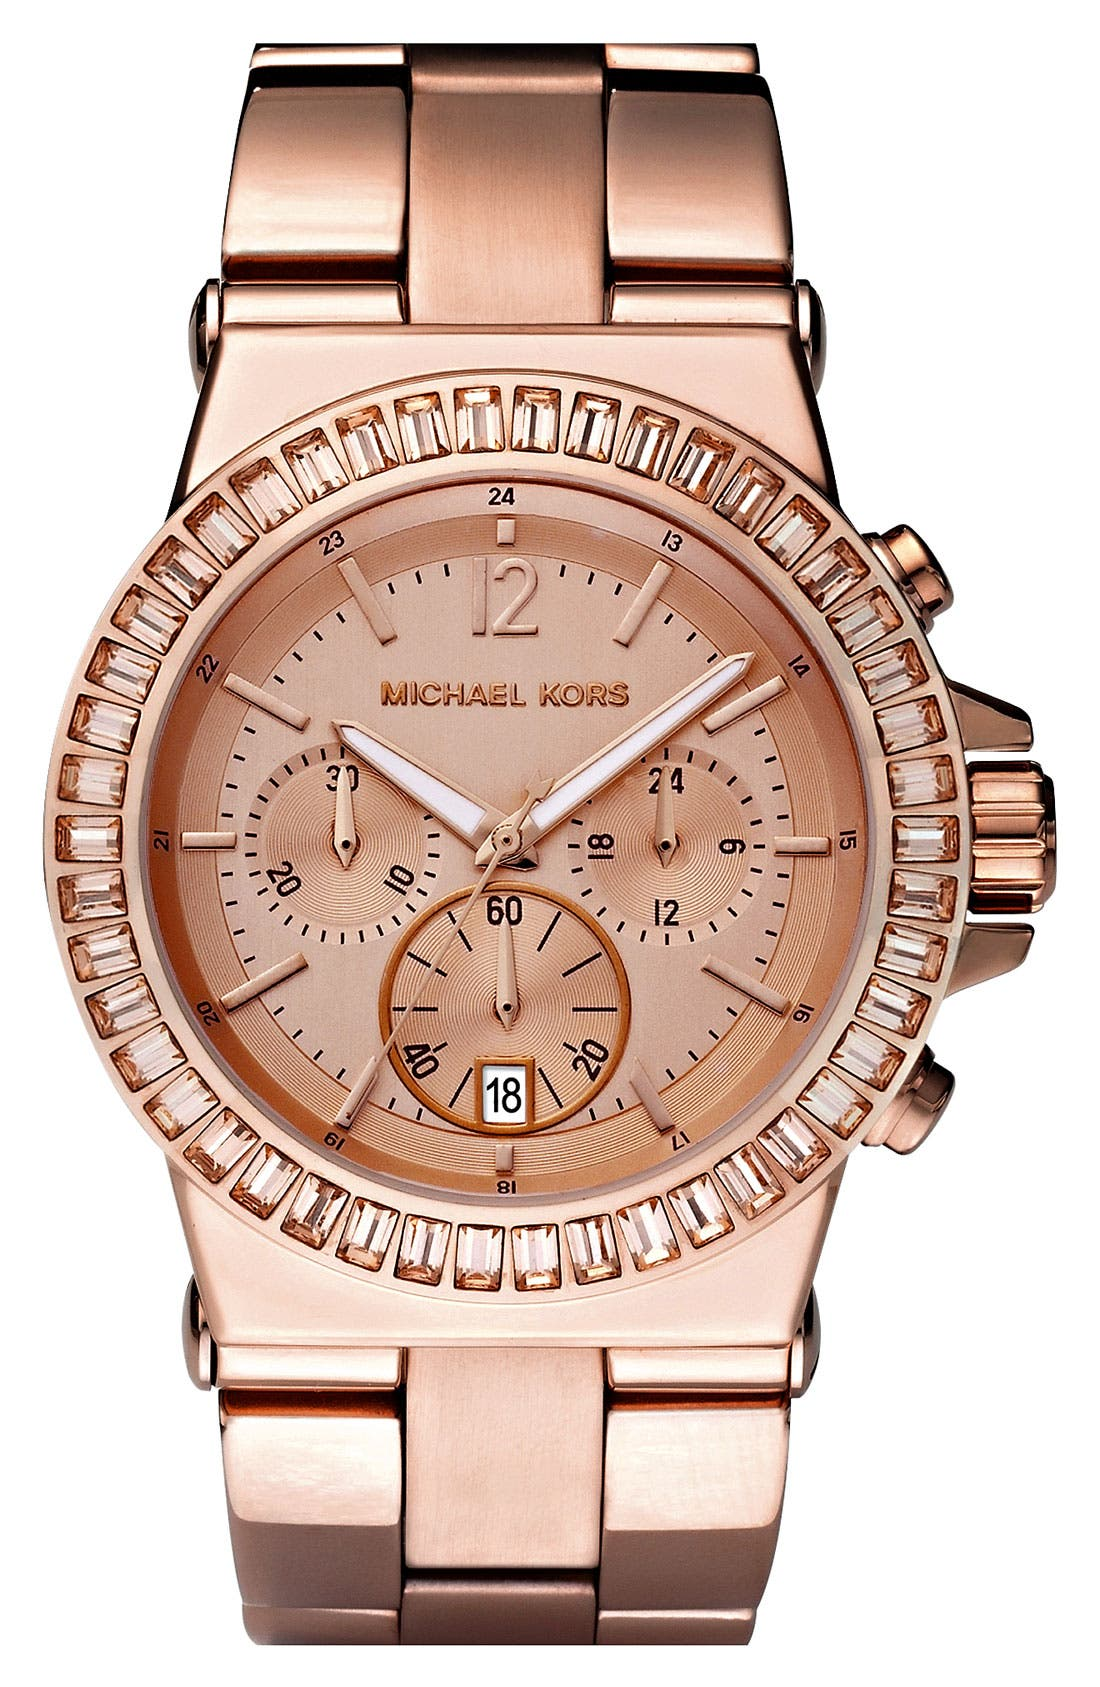 Main Image - Michael Kors 'Dylan' Crystal Bezel Chronograph Watch, 43mm